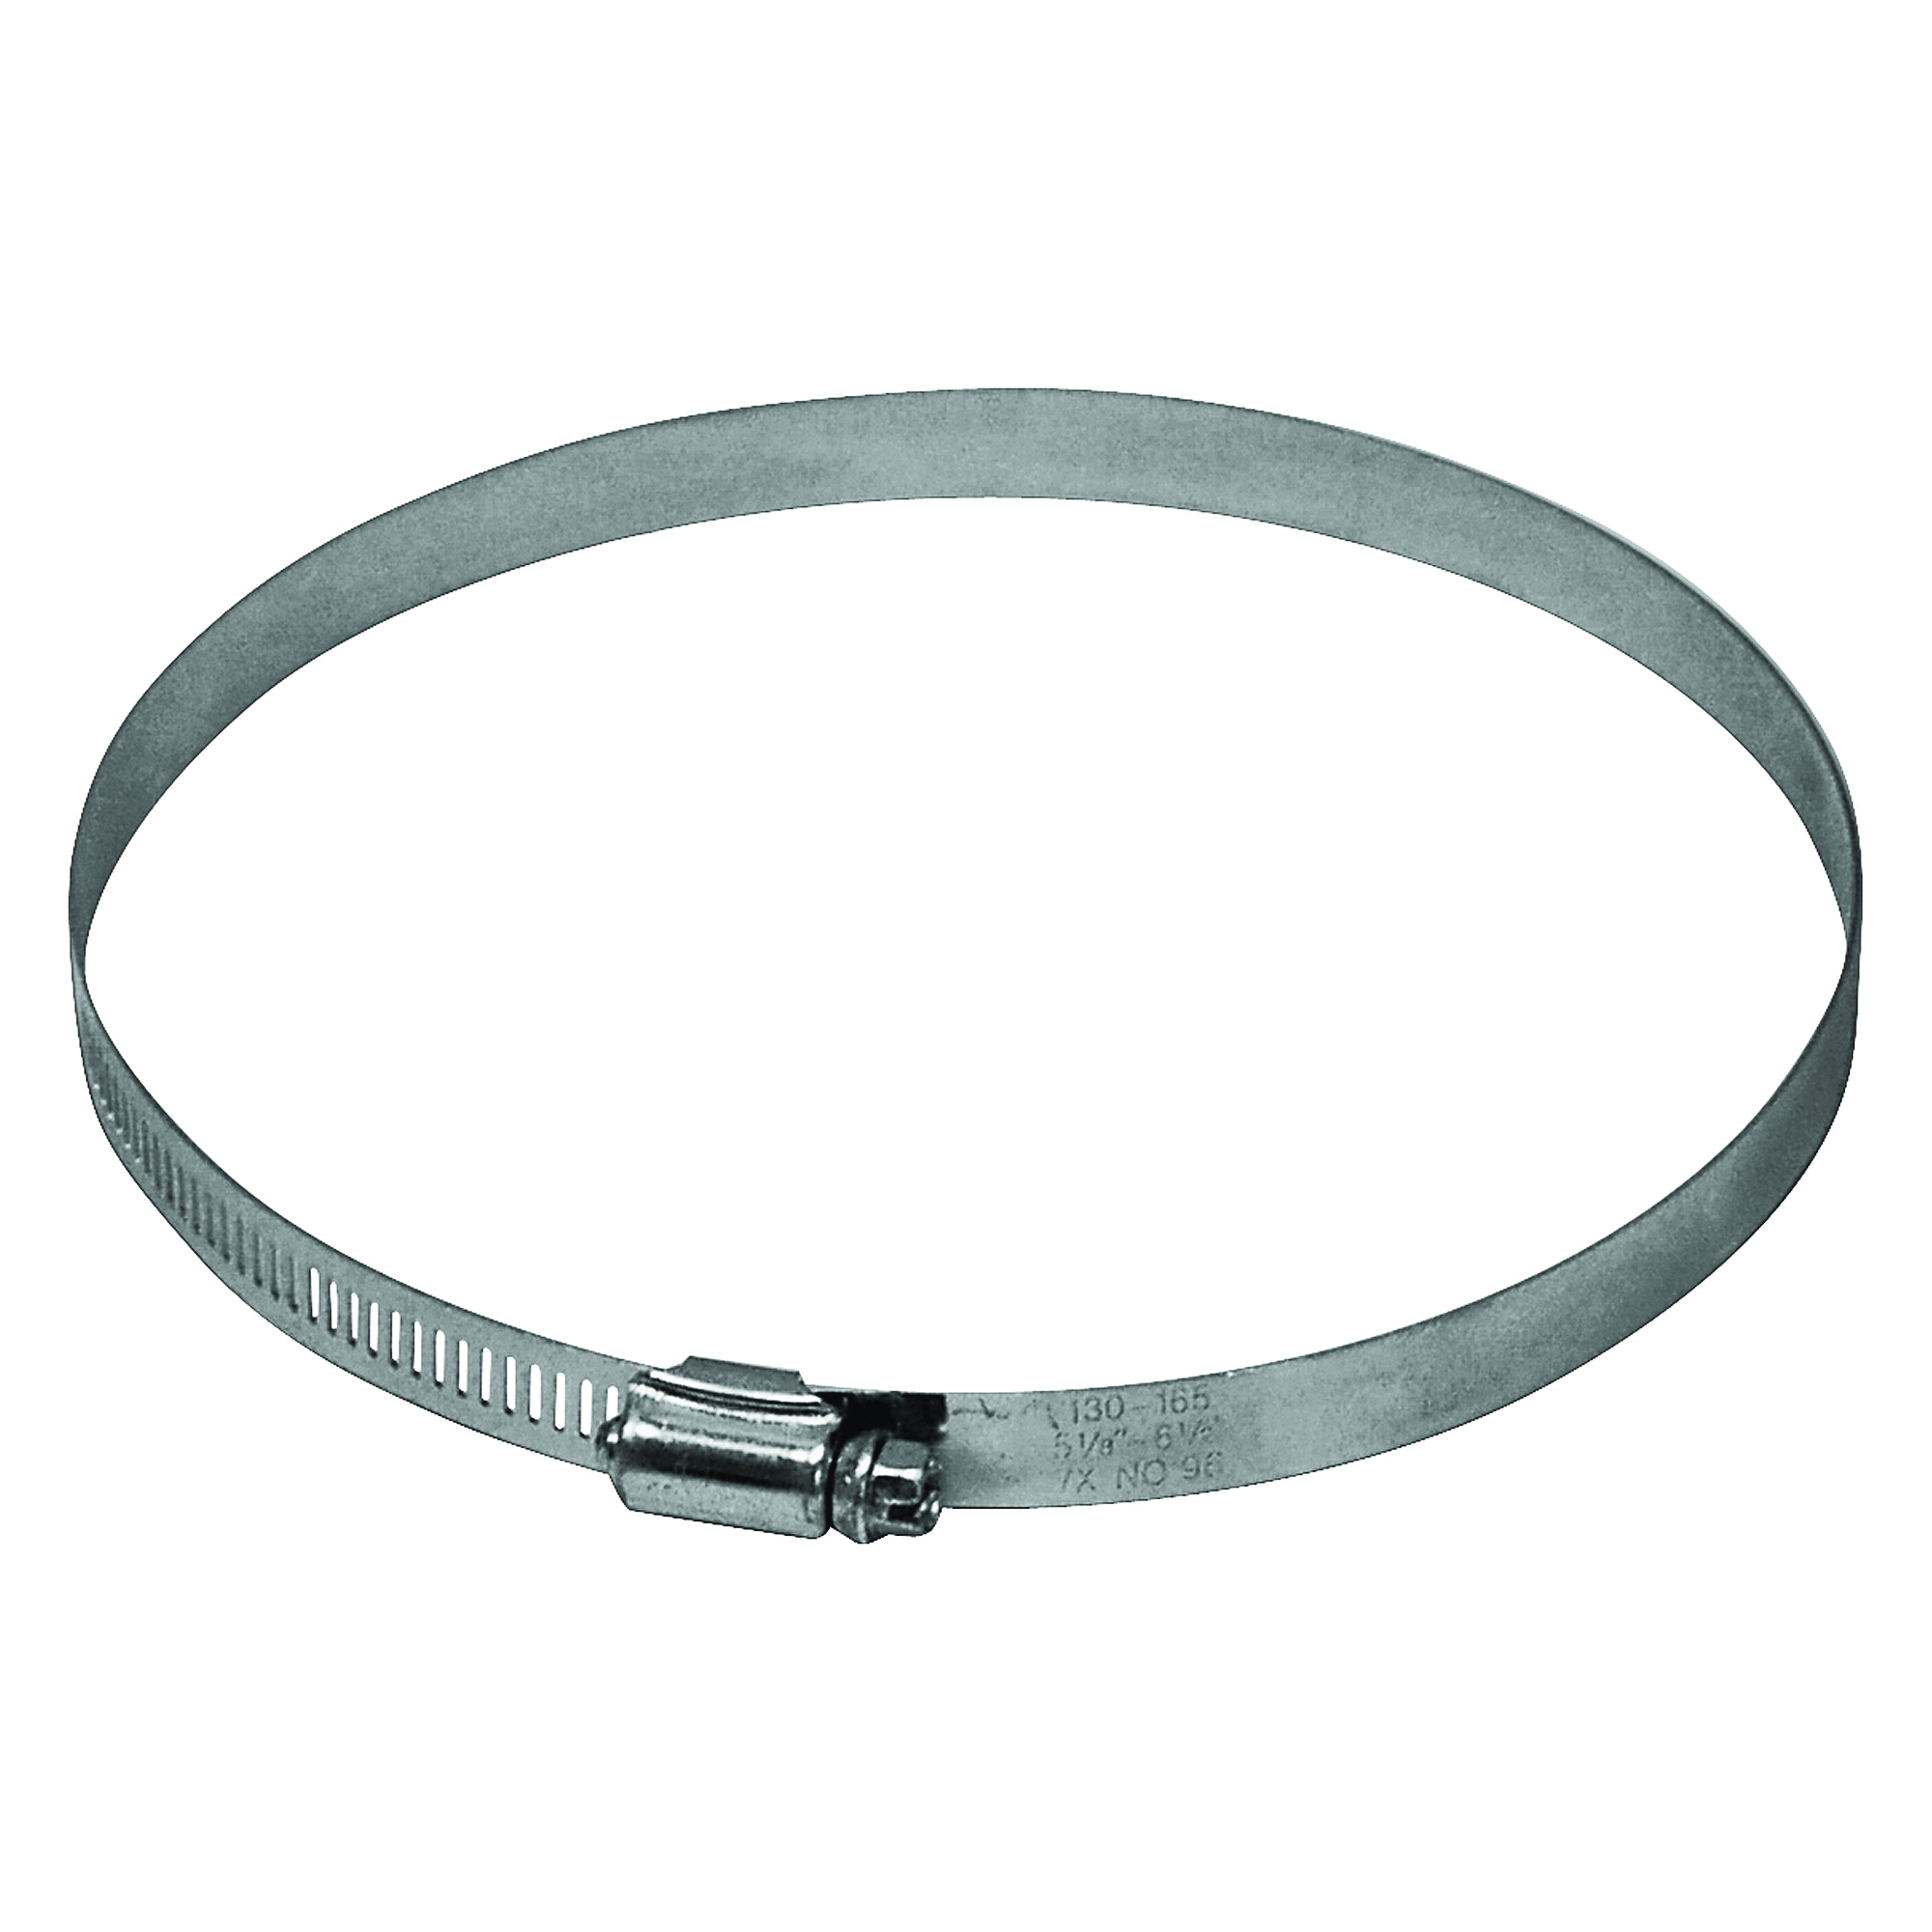 Picture of Lambro 2841 Worm Gear Clamp, 4 in Duct, Clamping Range: 3-9/16 to 4-1/2 in, Steel, Zinc